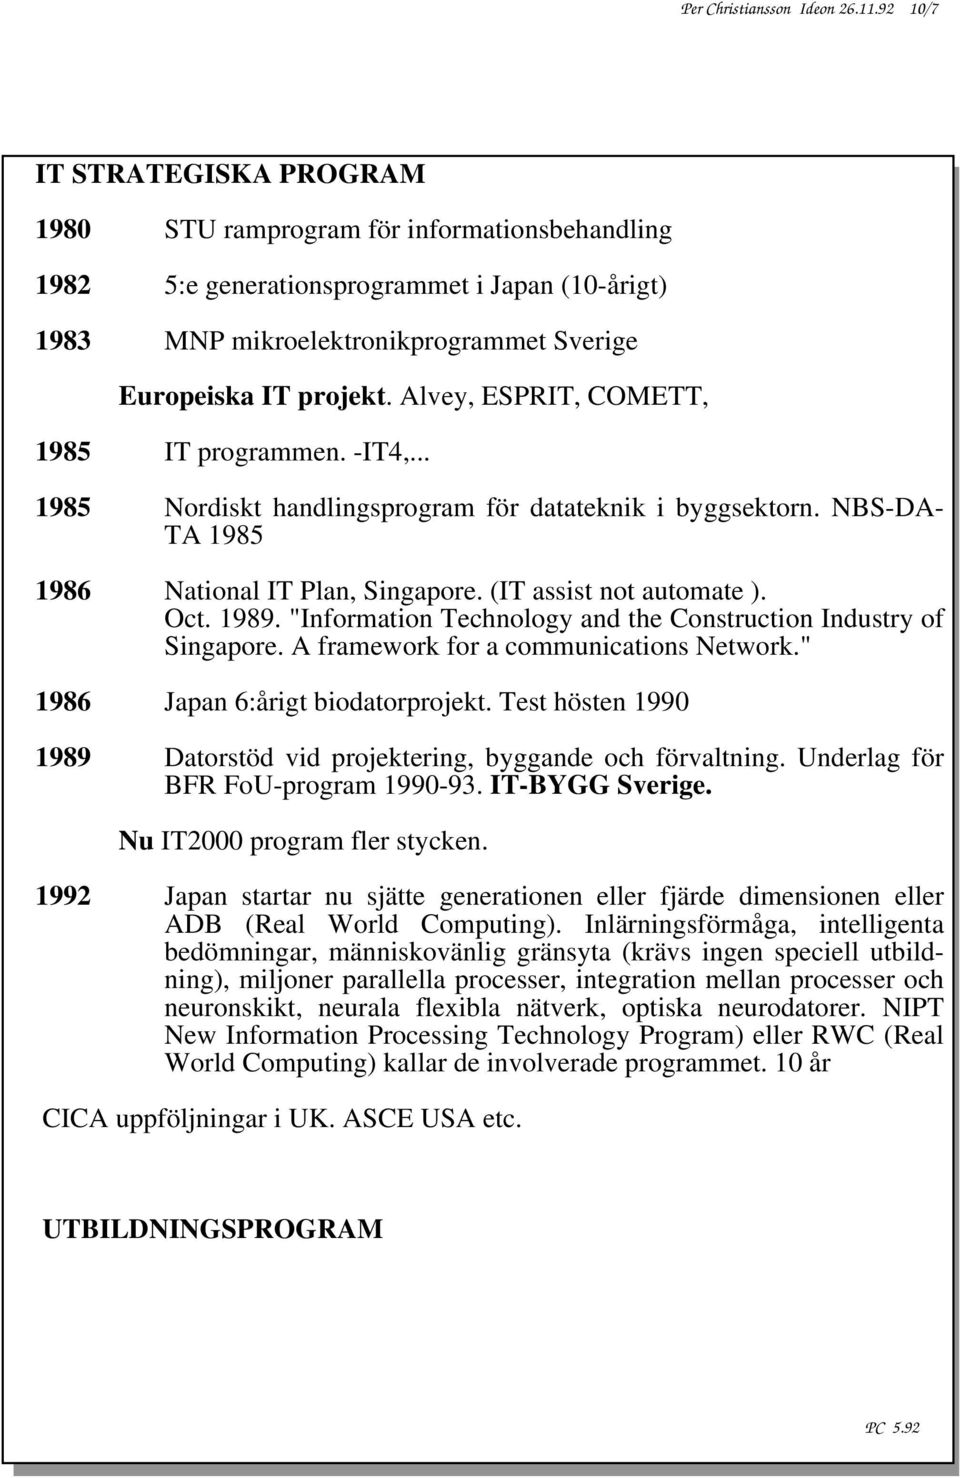 Alvey, ESPRIT, COMETT, 1985 IT programmen. -IT4,... 1985 Nordiskt handlingsprogram för datateknik i byggsektorn. NBS-DA- TA 1985 1986 National IT Plan, Singapore. (IT assist not automate ). Oct. 1989.